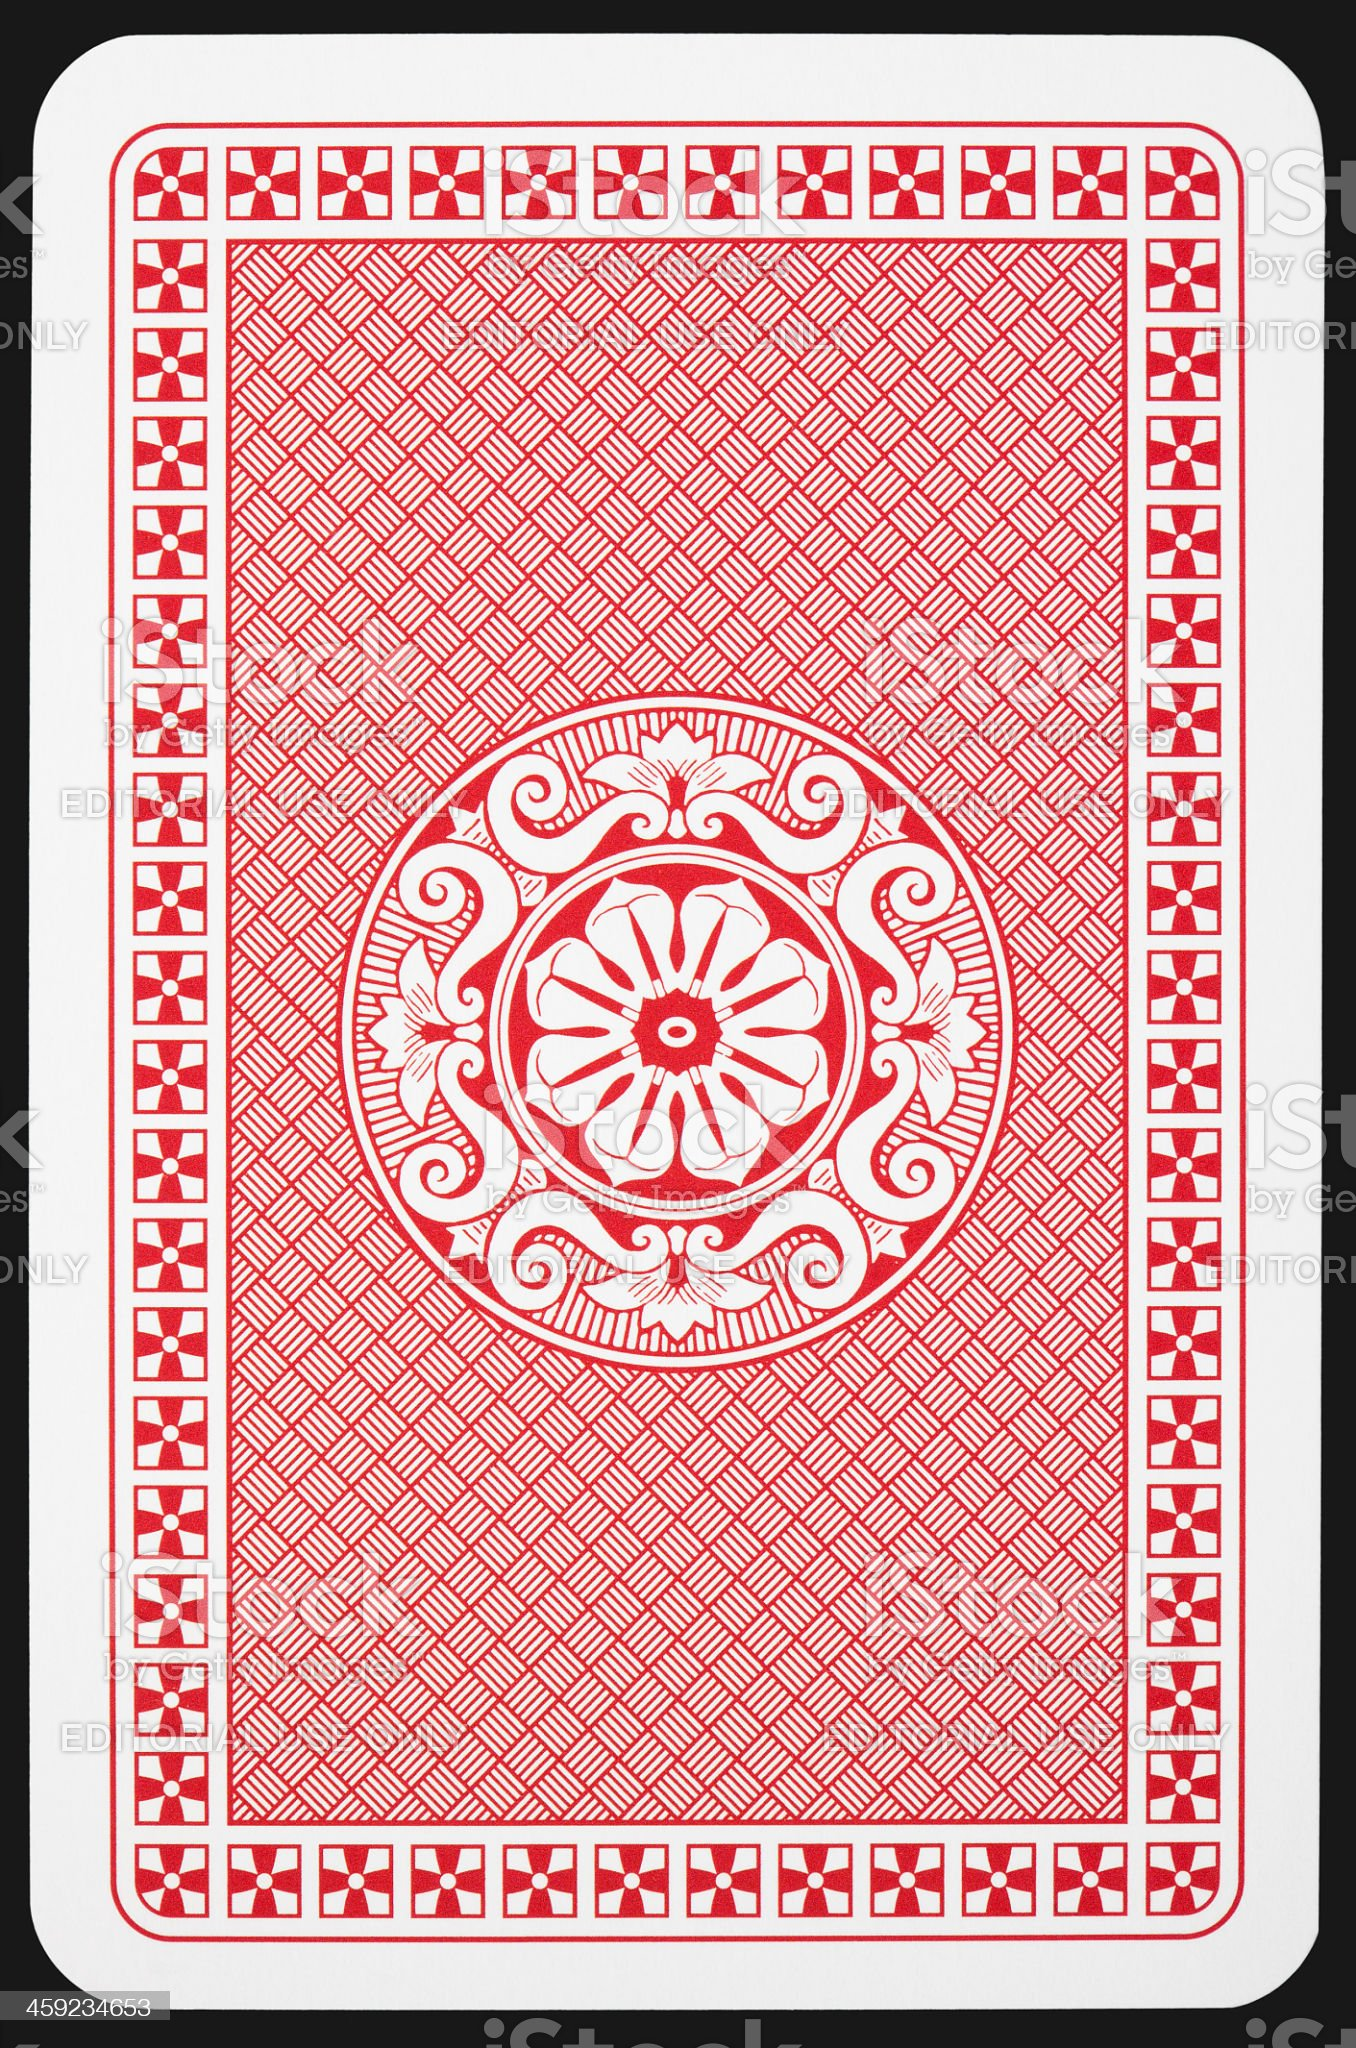 Back side of playing card royalty-free stock photo